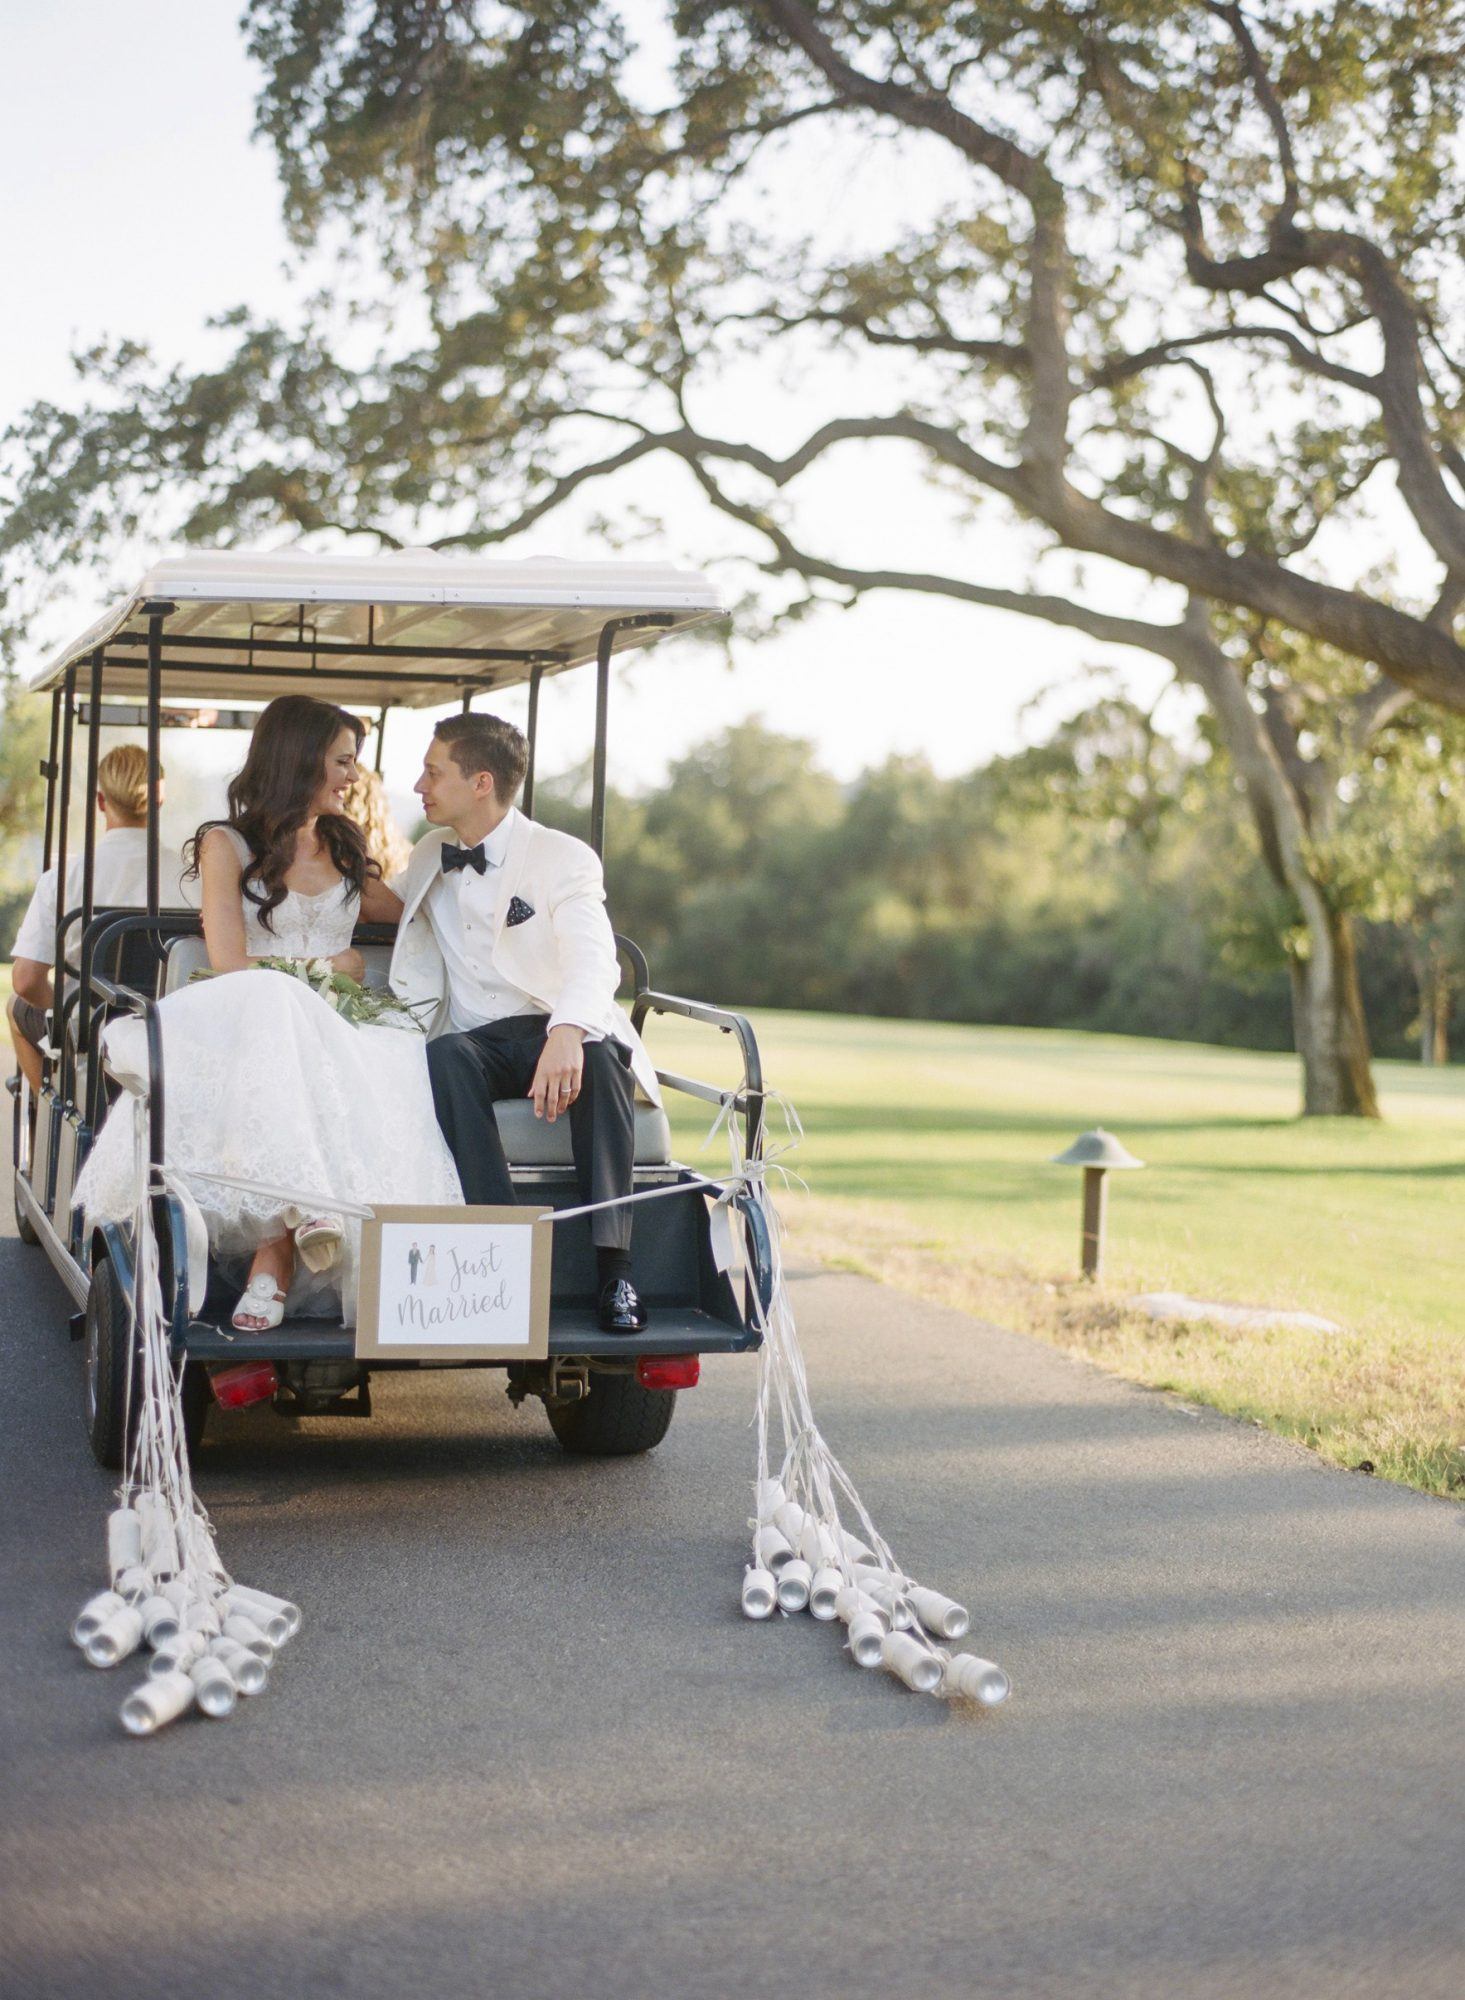 cassandra ben wedding california couple cart